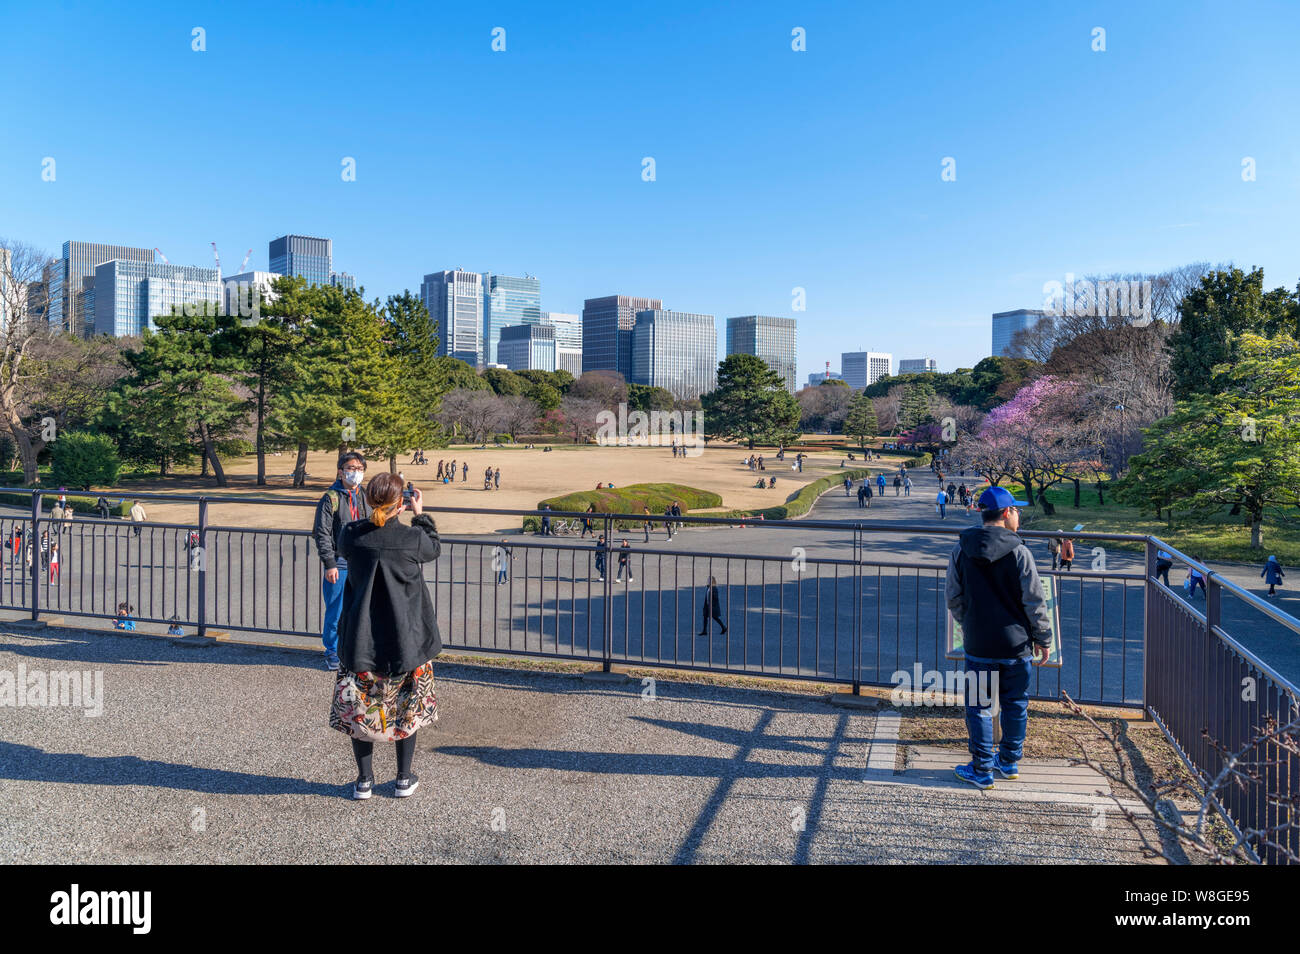 Marunouchi skyscrapers viewed from the Edo Castle Keep with site of Honmaru Goten Palace in foreground, East Gardens, Imperial Palace, Tokyo, Japan Stock Photo